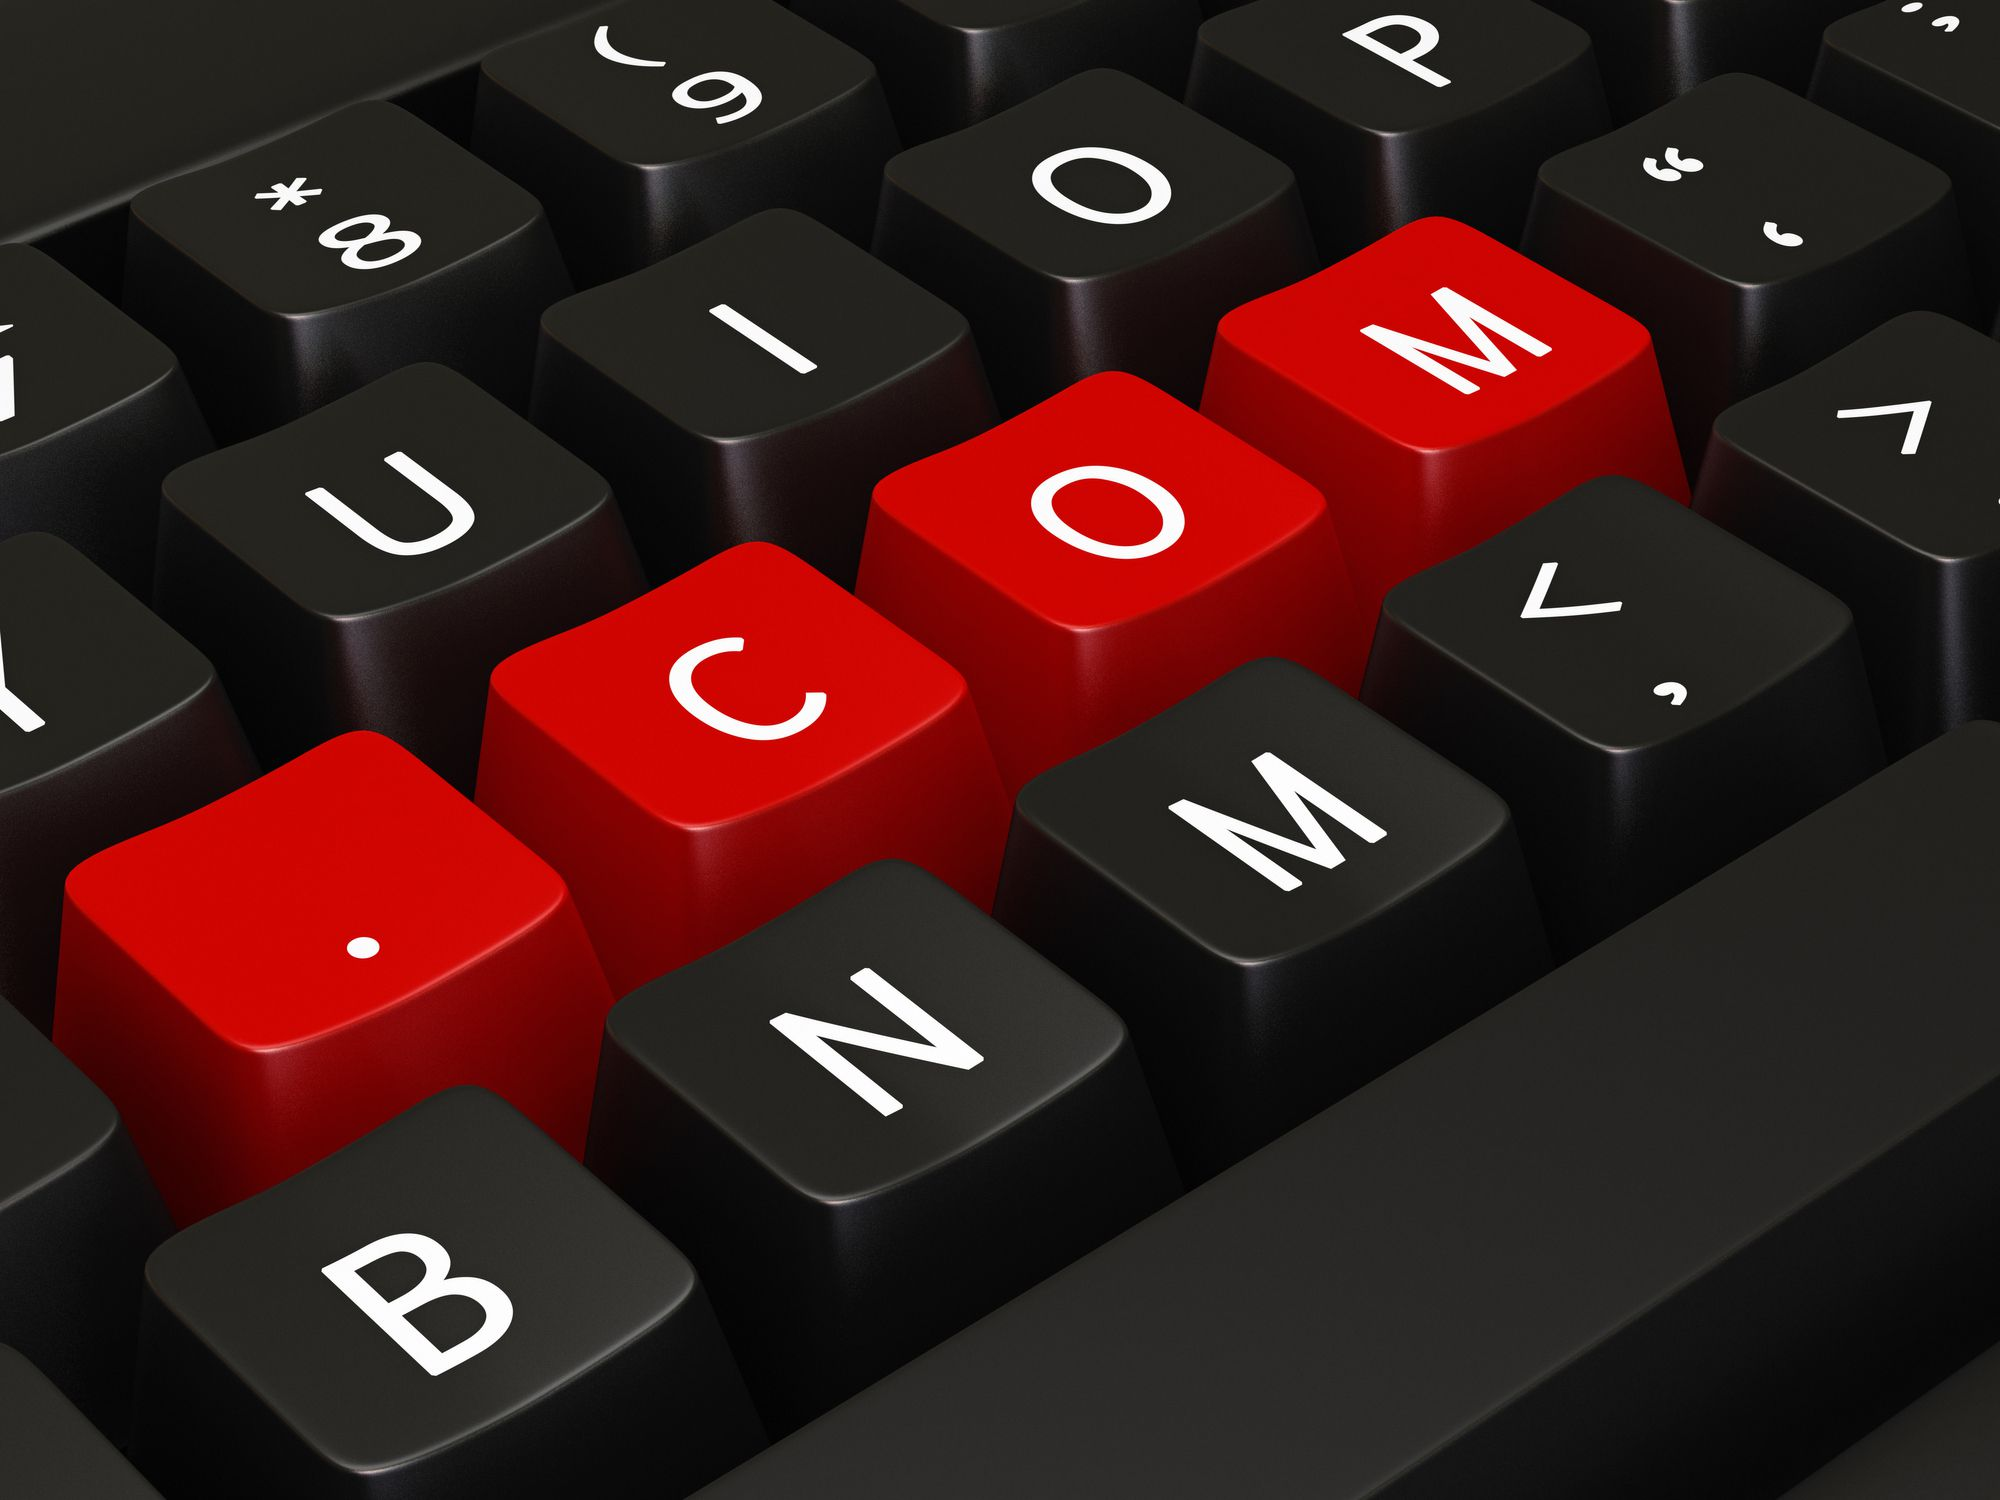 Dot-com is a common domain name extension